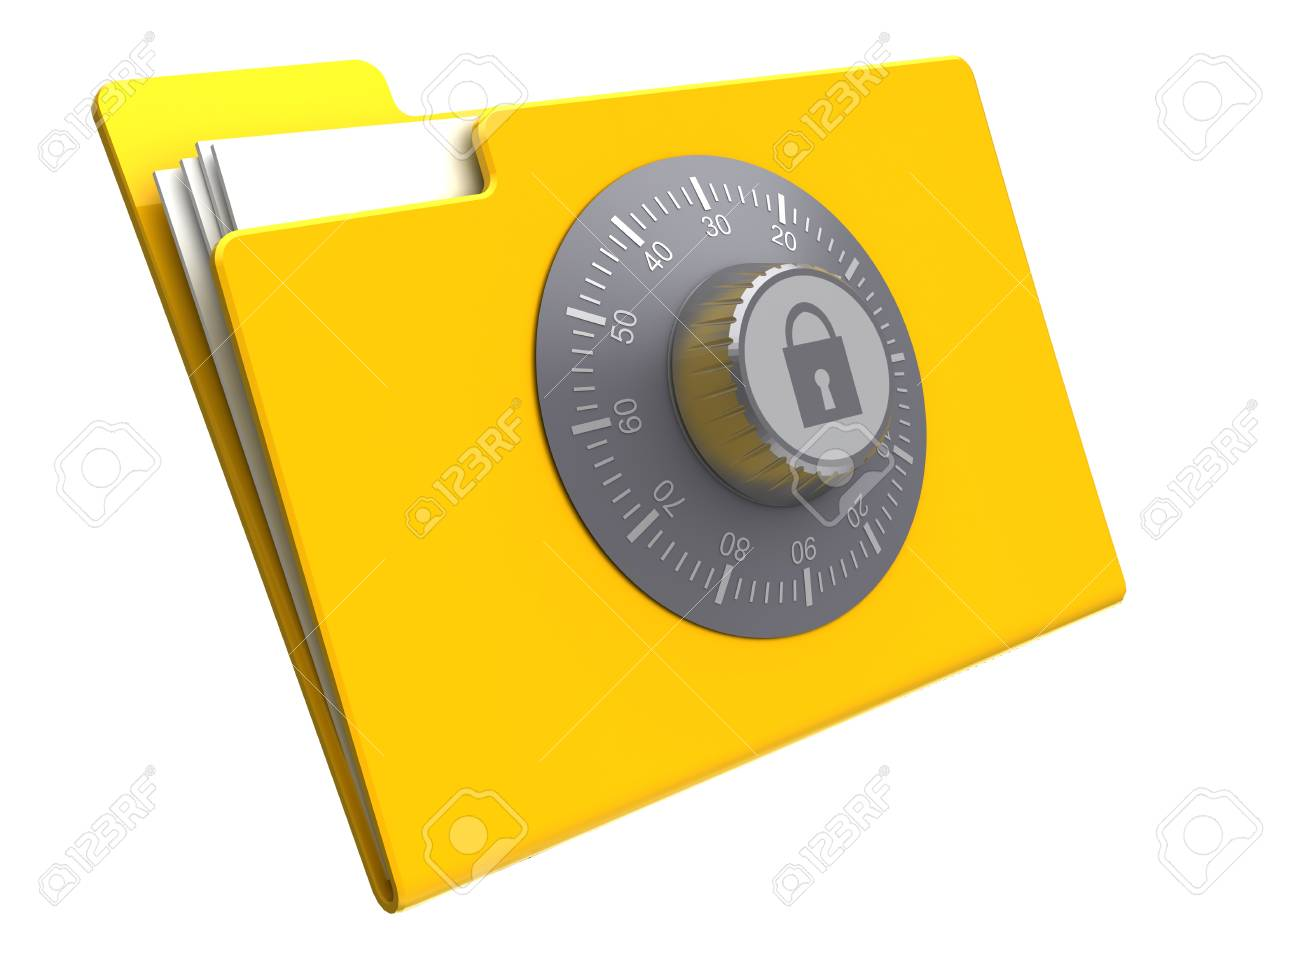 3d illustration of folder with combination lock, isolated over white background Stock Photo - 12942470